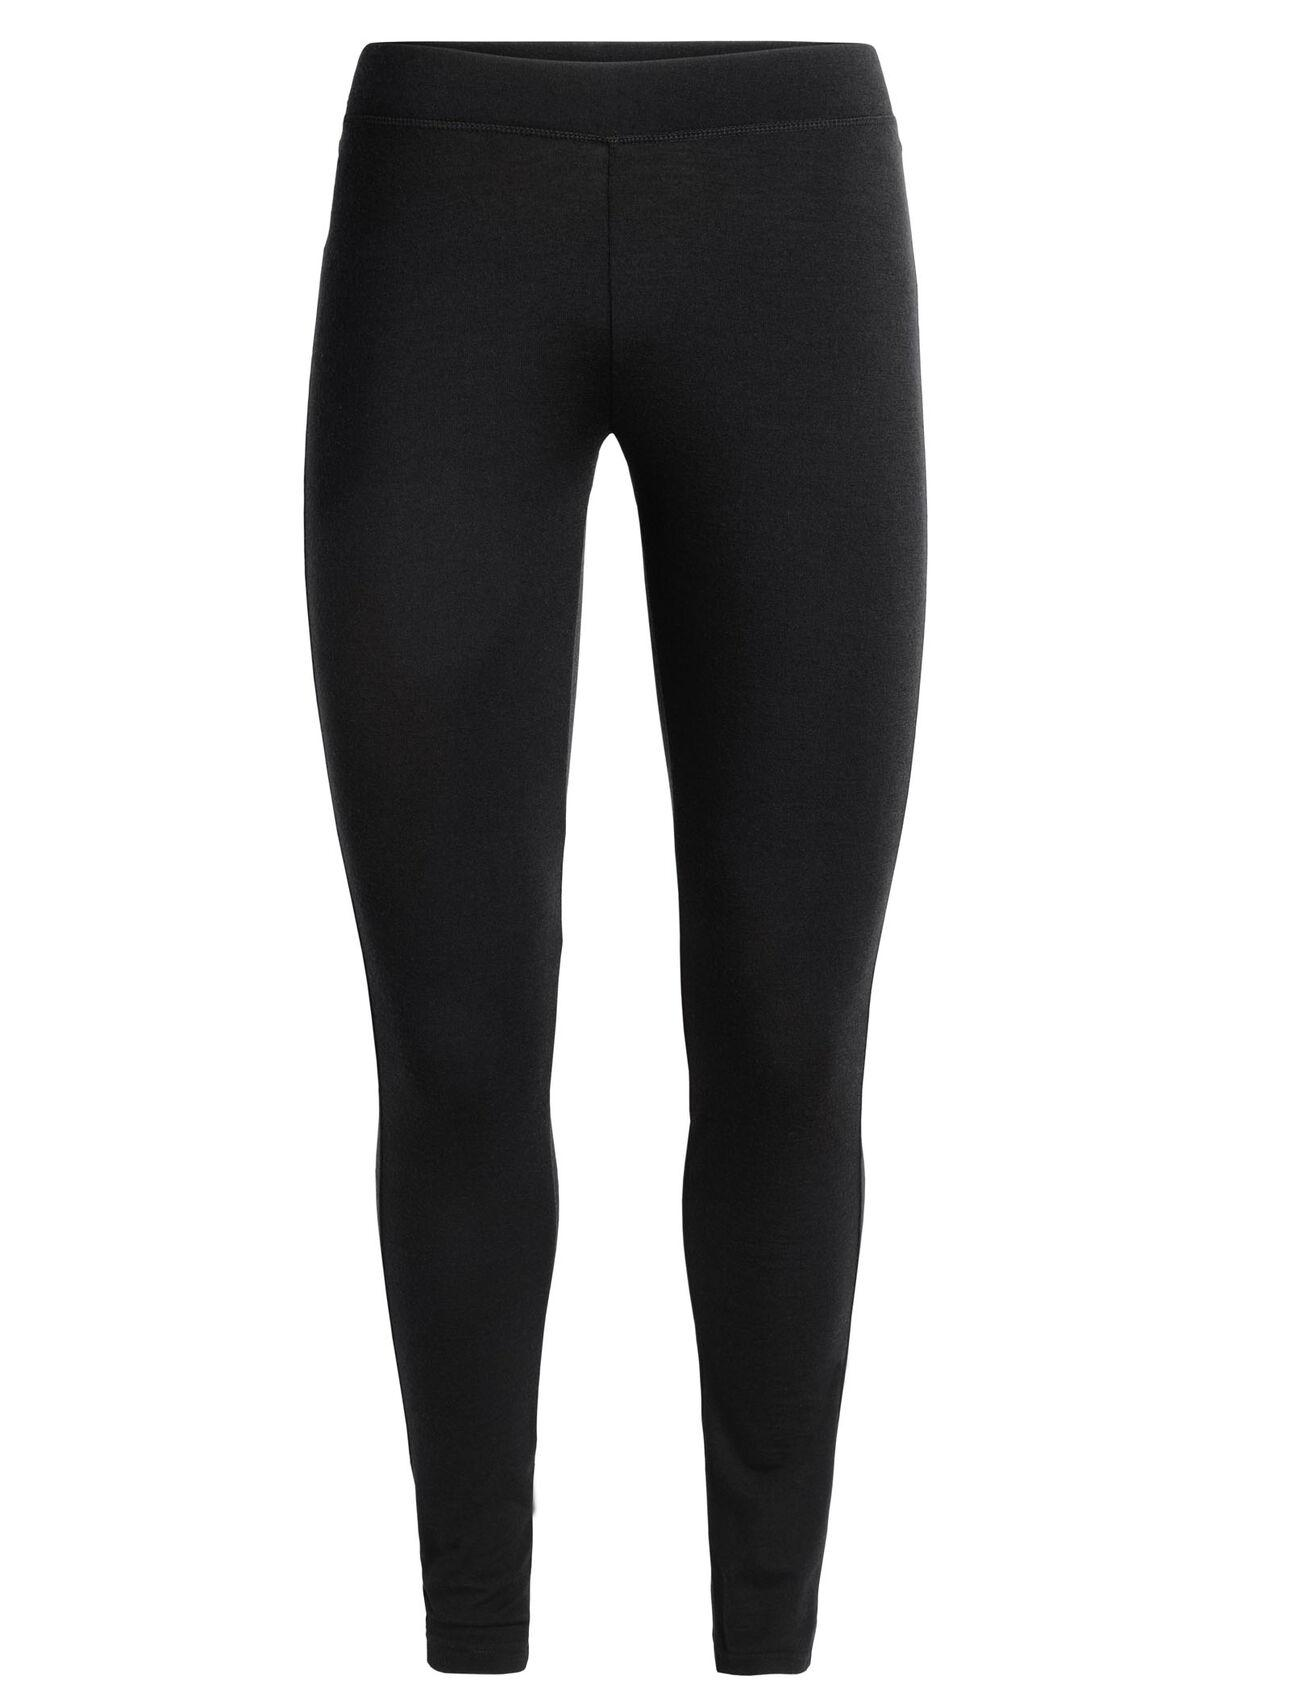 Icebreaker Women's Solace Leggings